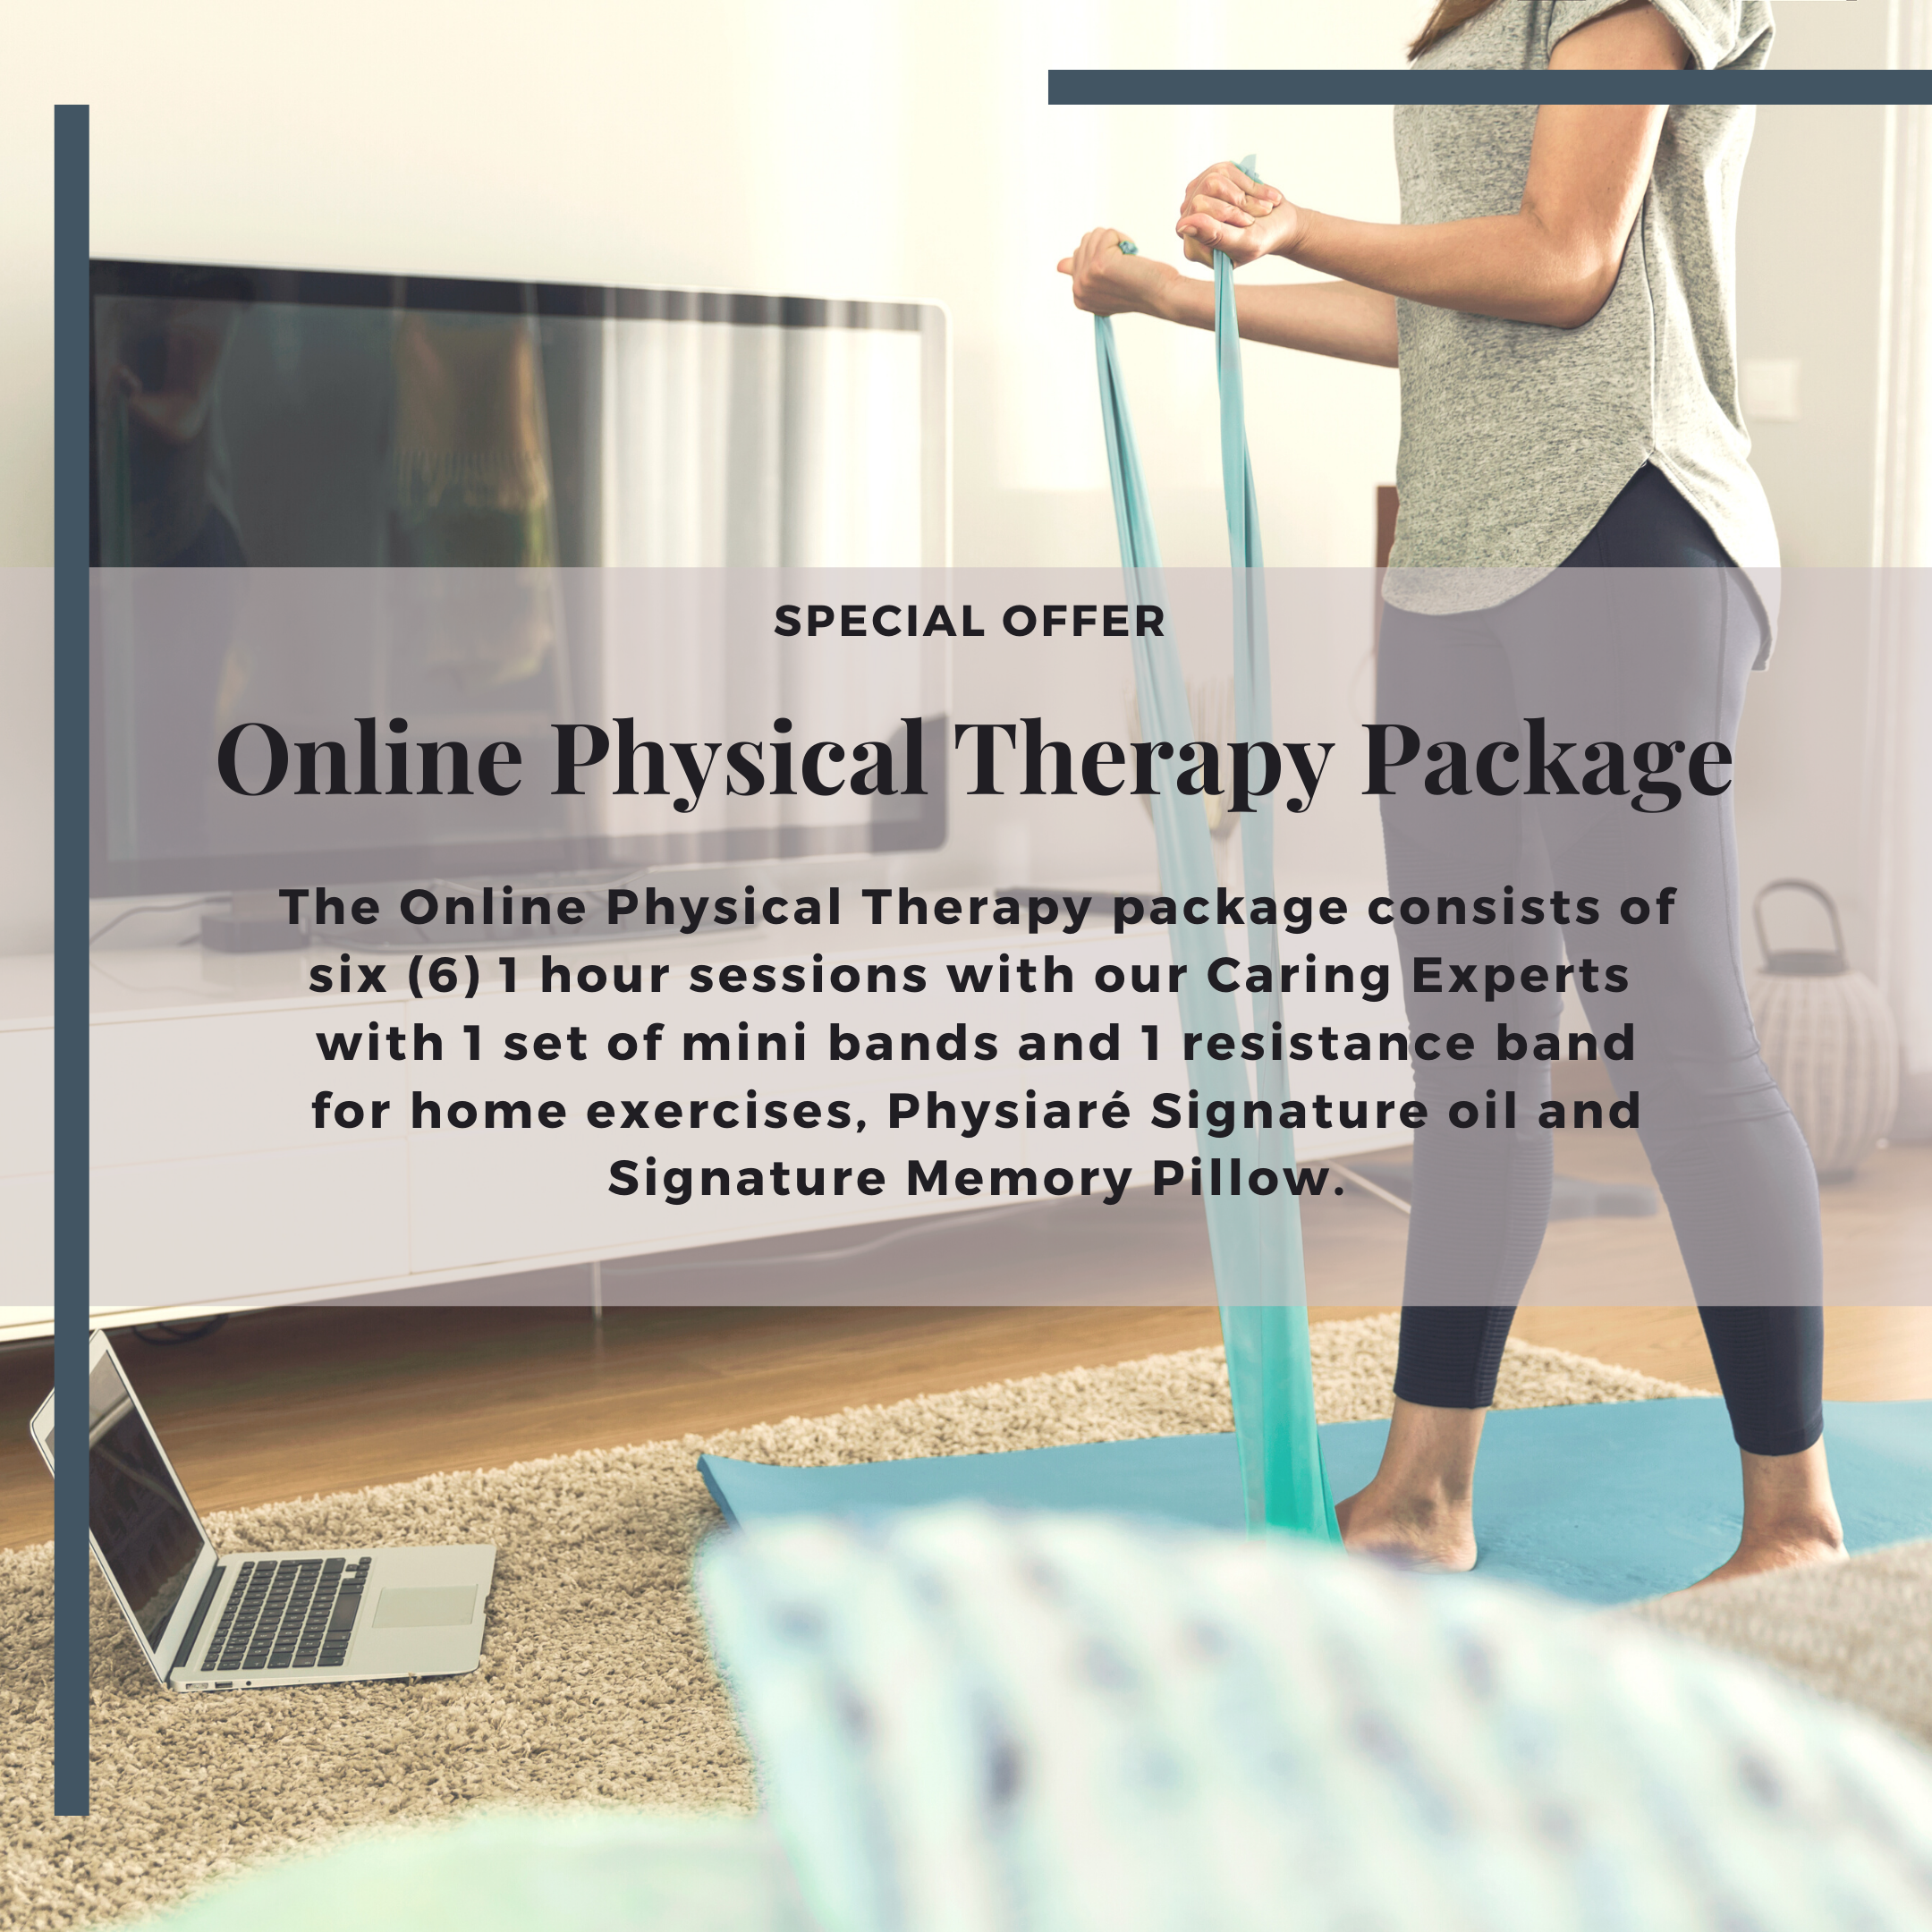 Online Physical Therapy Package